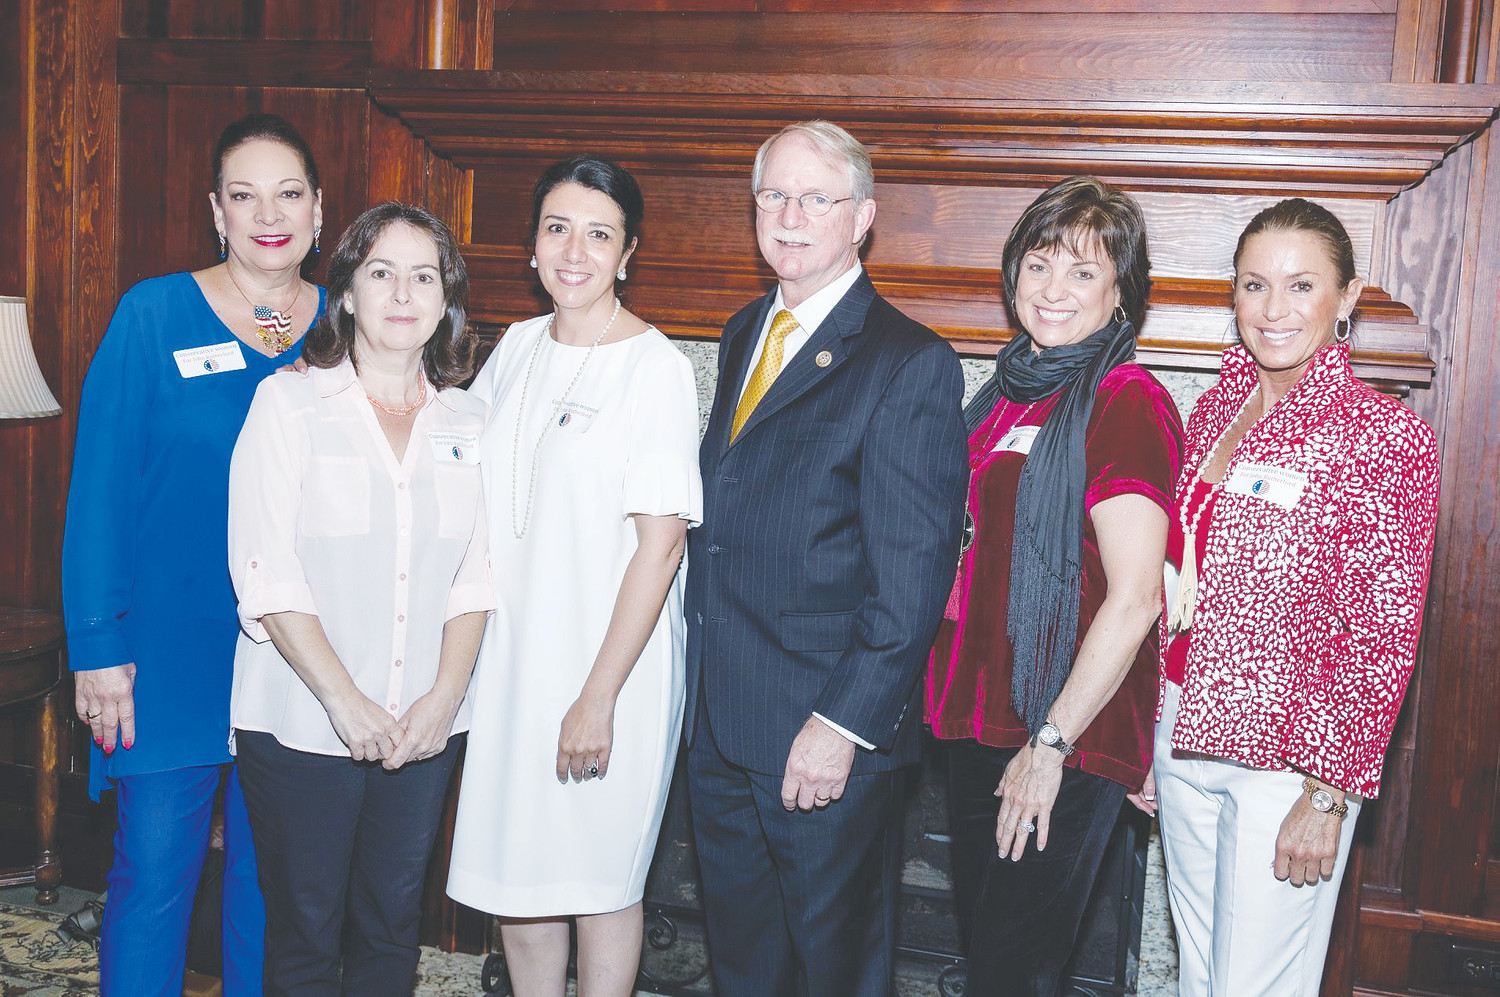 Rep. John Rutherford (center) gathers with event organizers Kristie Pape, Flavia Bowling, Francesca Rutherford, Helen Lateau and Tracie Rampley